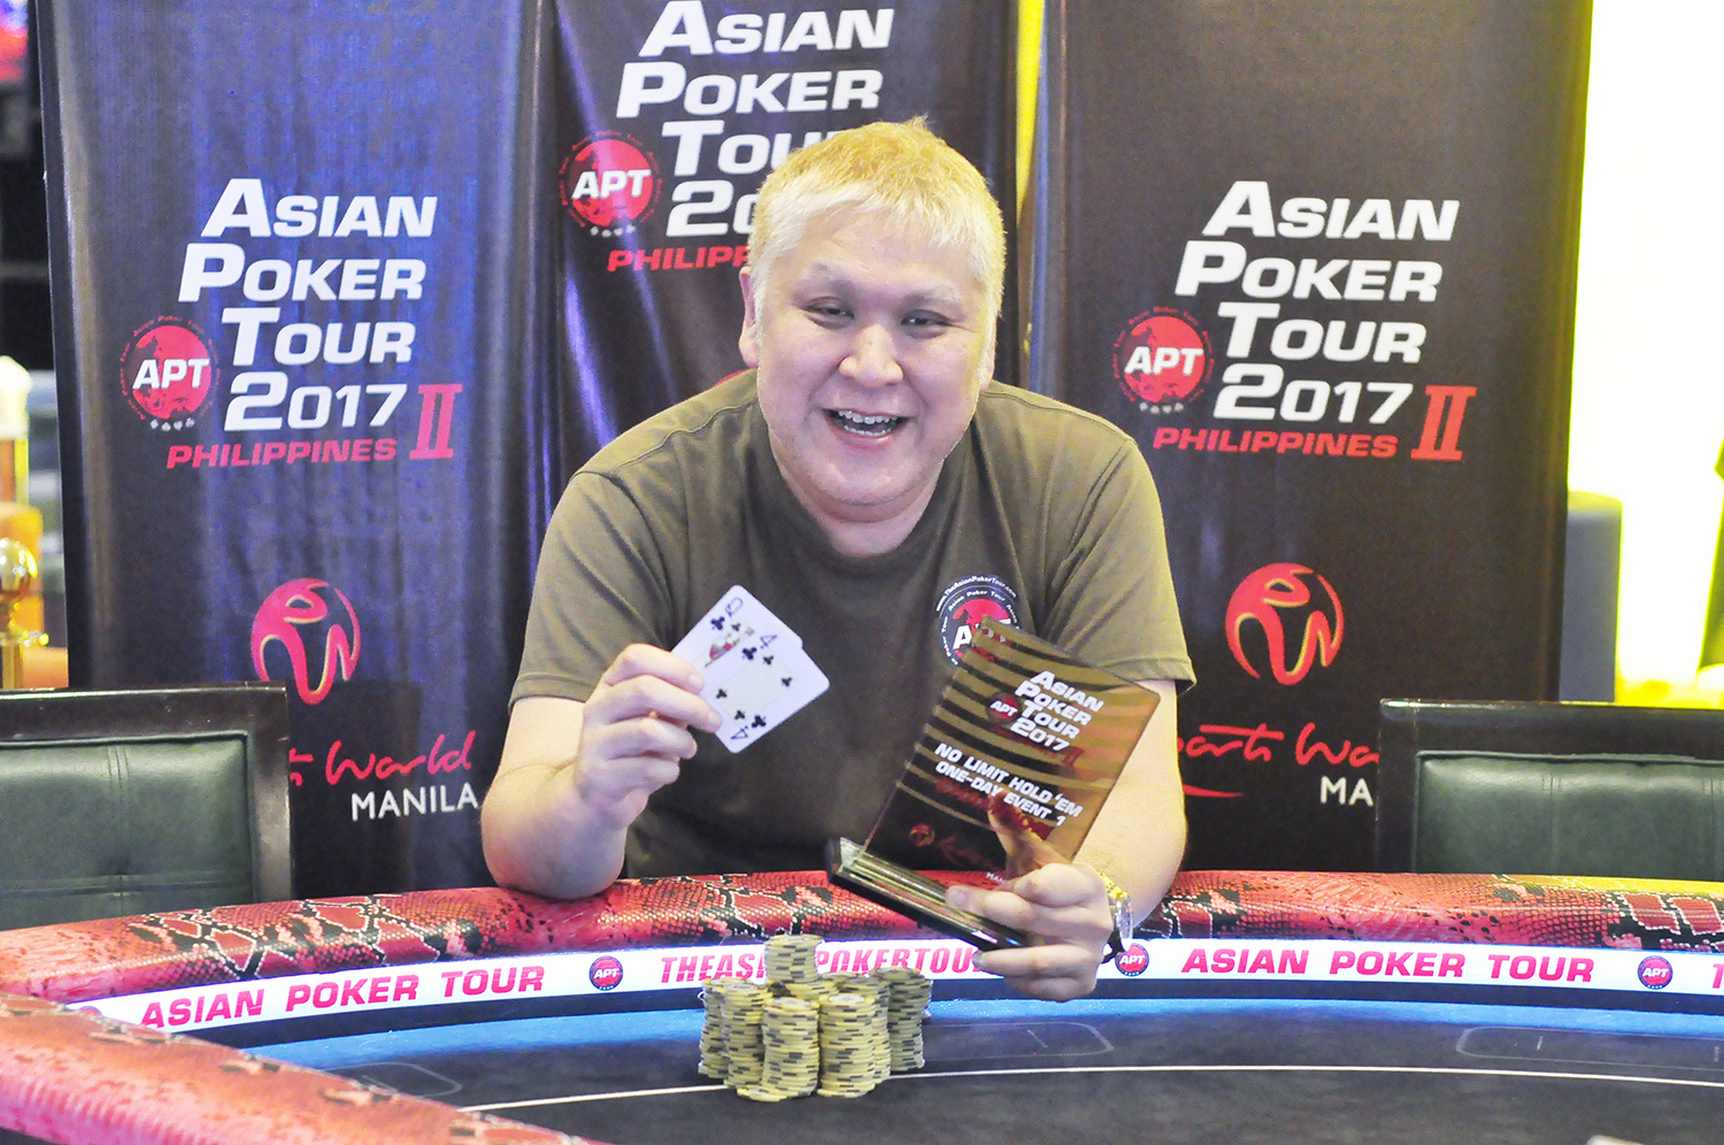 The Asian Poker Tour Press Released And Media Coverage The Asian Poker Tour Press Released Room